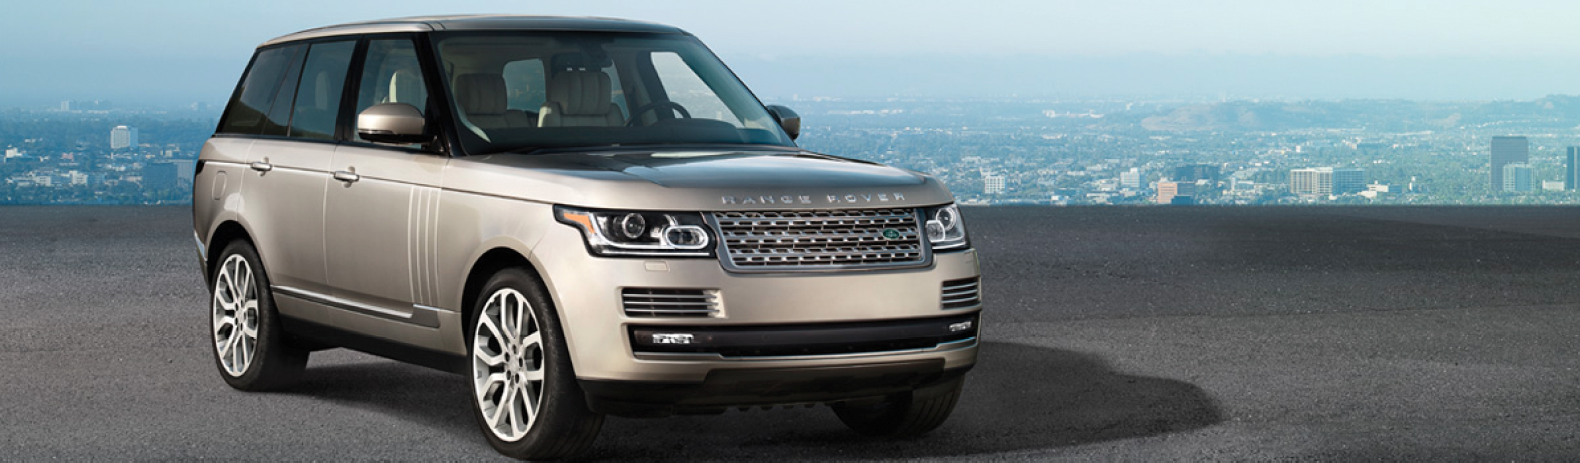 land-rover-hits-15-percent-in-digital-sales-with-cross-channel-marketing_articles_01